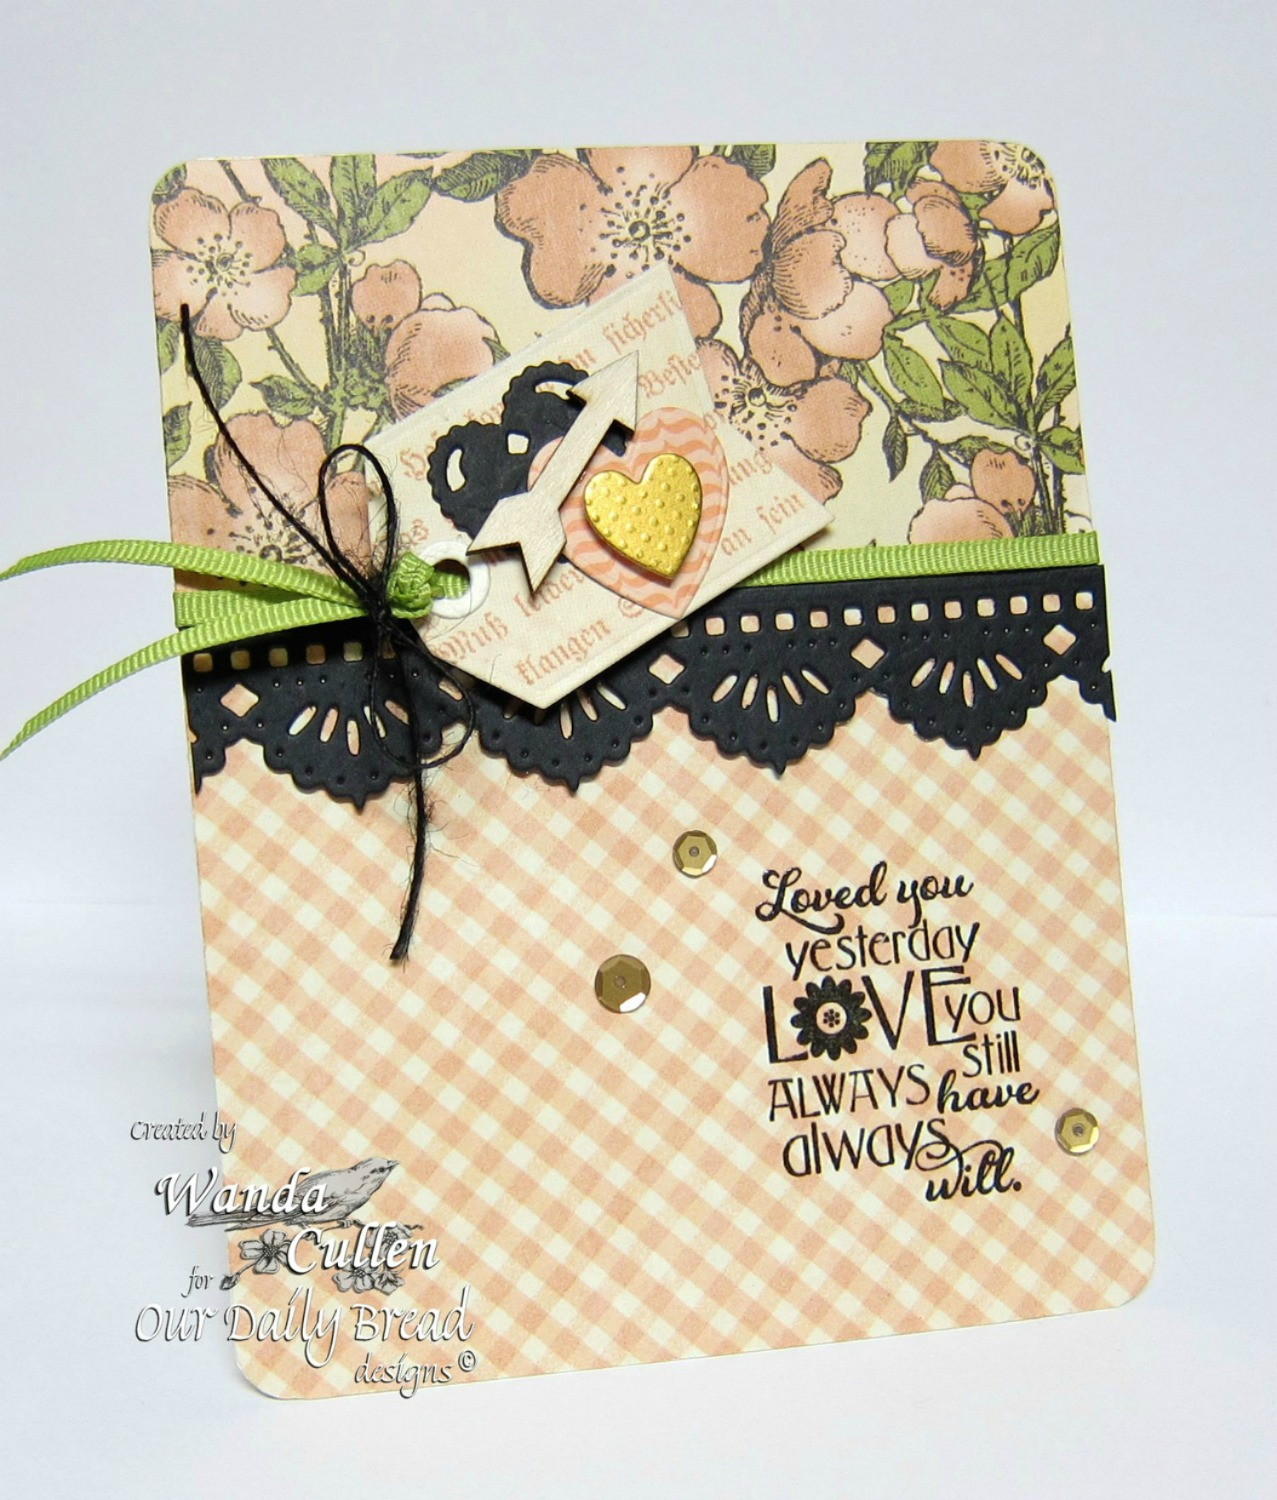 Stamps - Our Daily Bread Designs Love You Bunches, ODBD Custom Ornate Hearts Die, ODBD Custom Beautiful Borders Dies